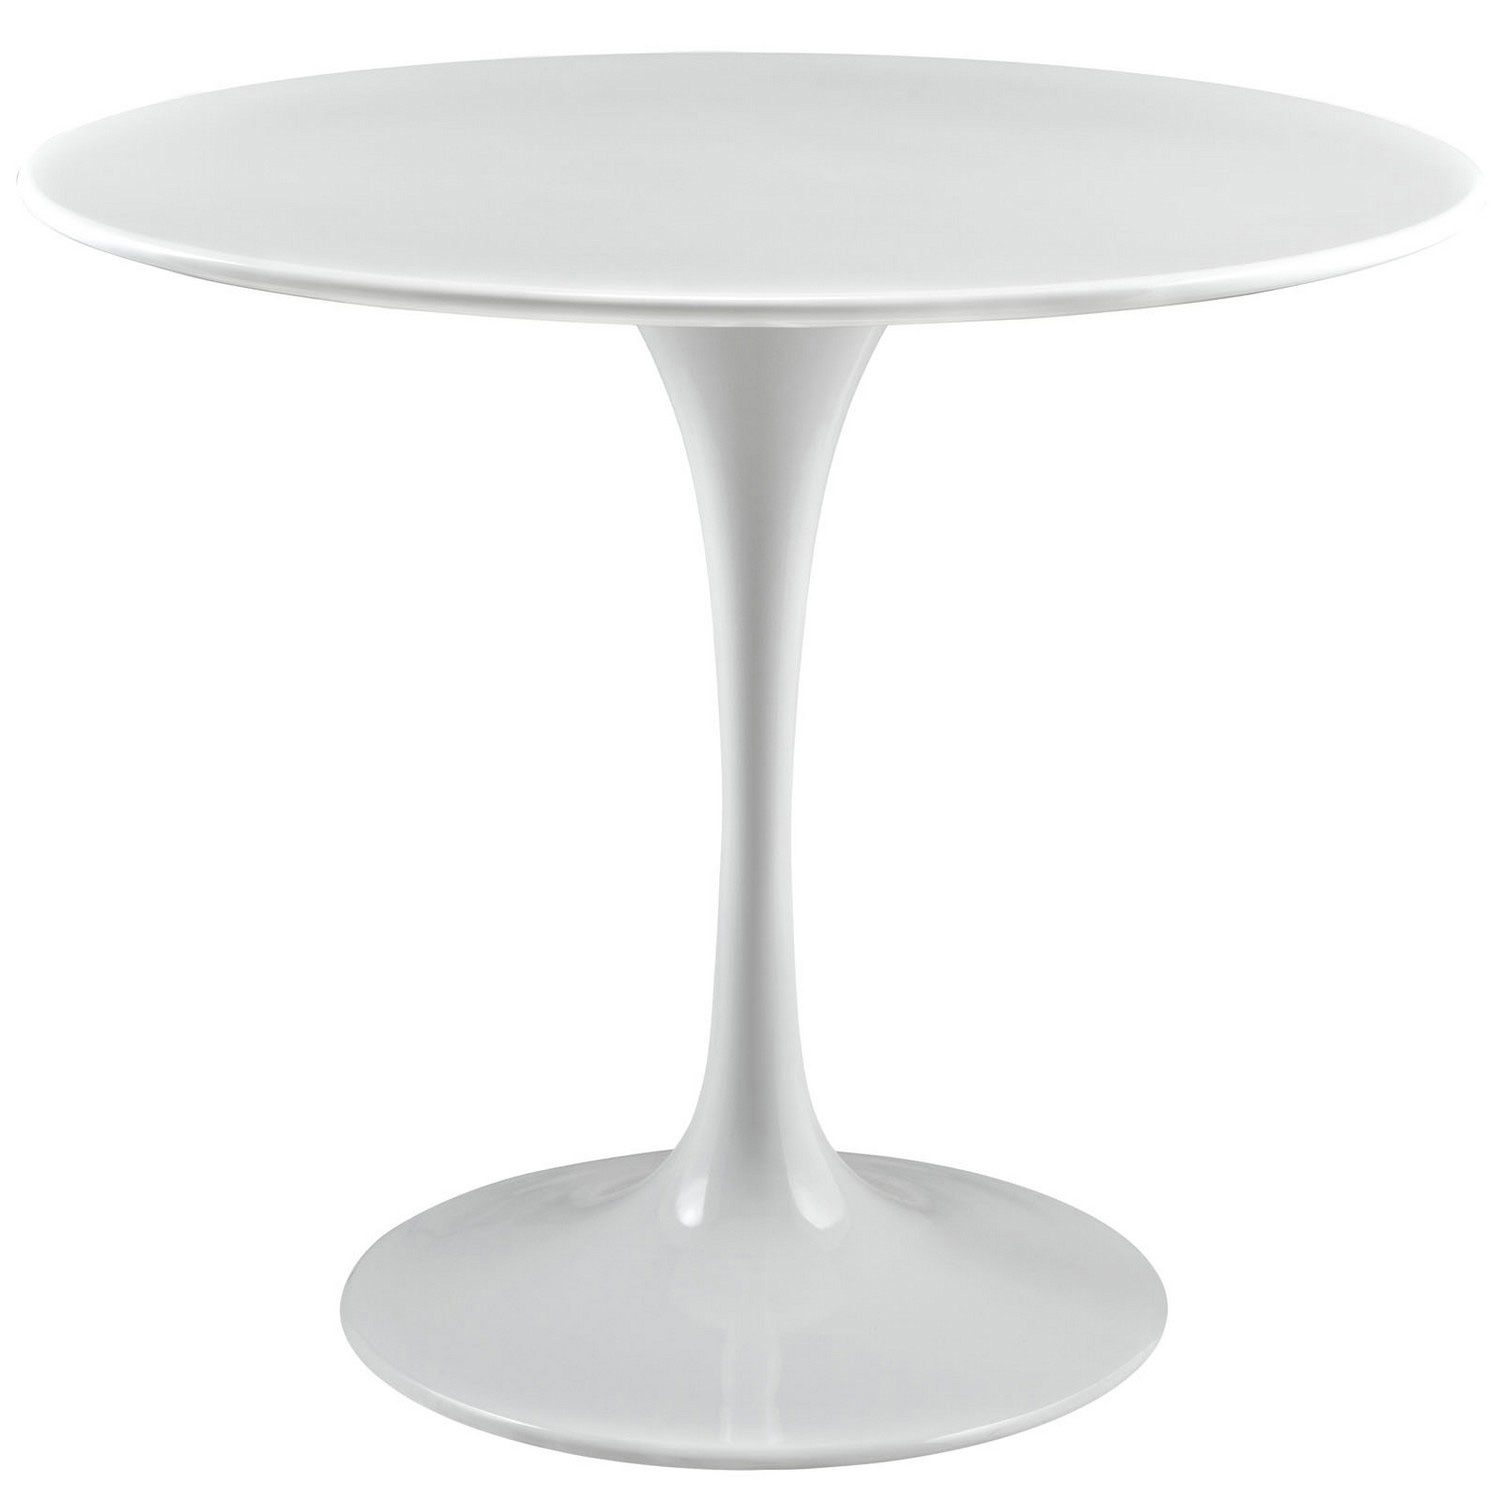 Modway Lippa 36 Wood Top Dining Table - White